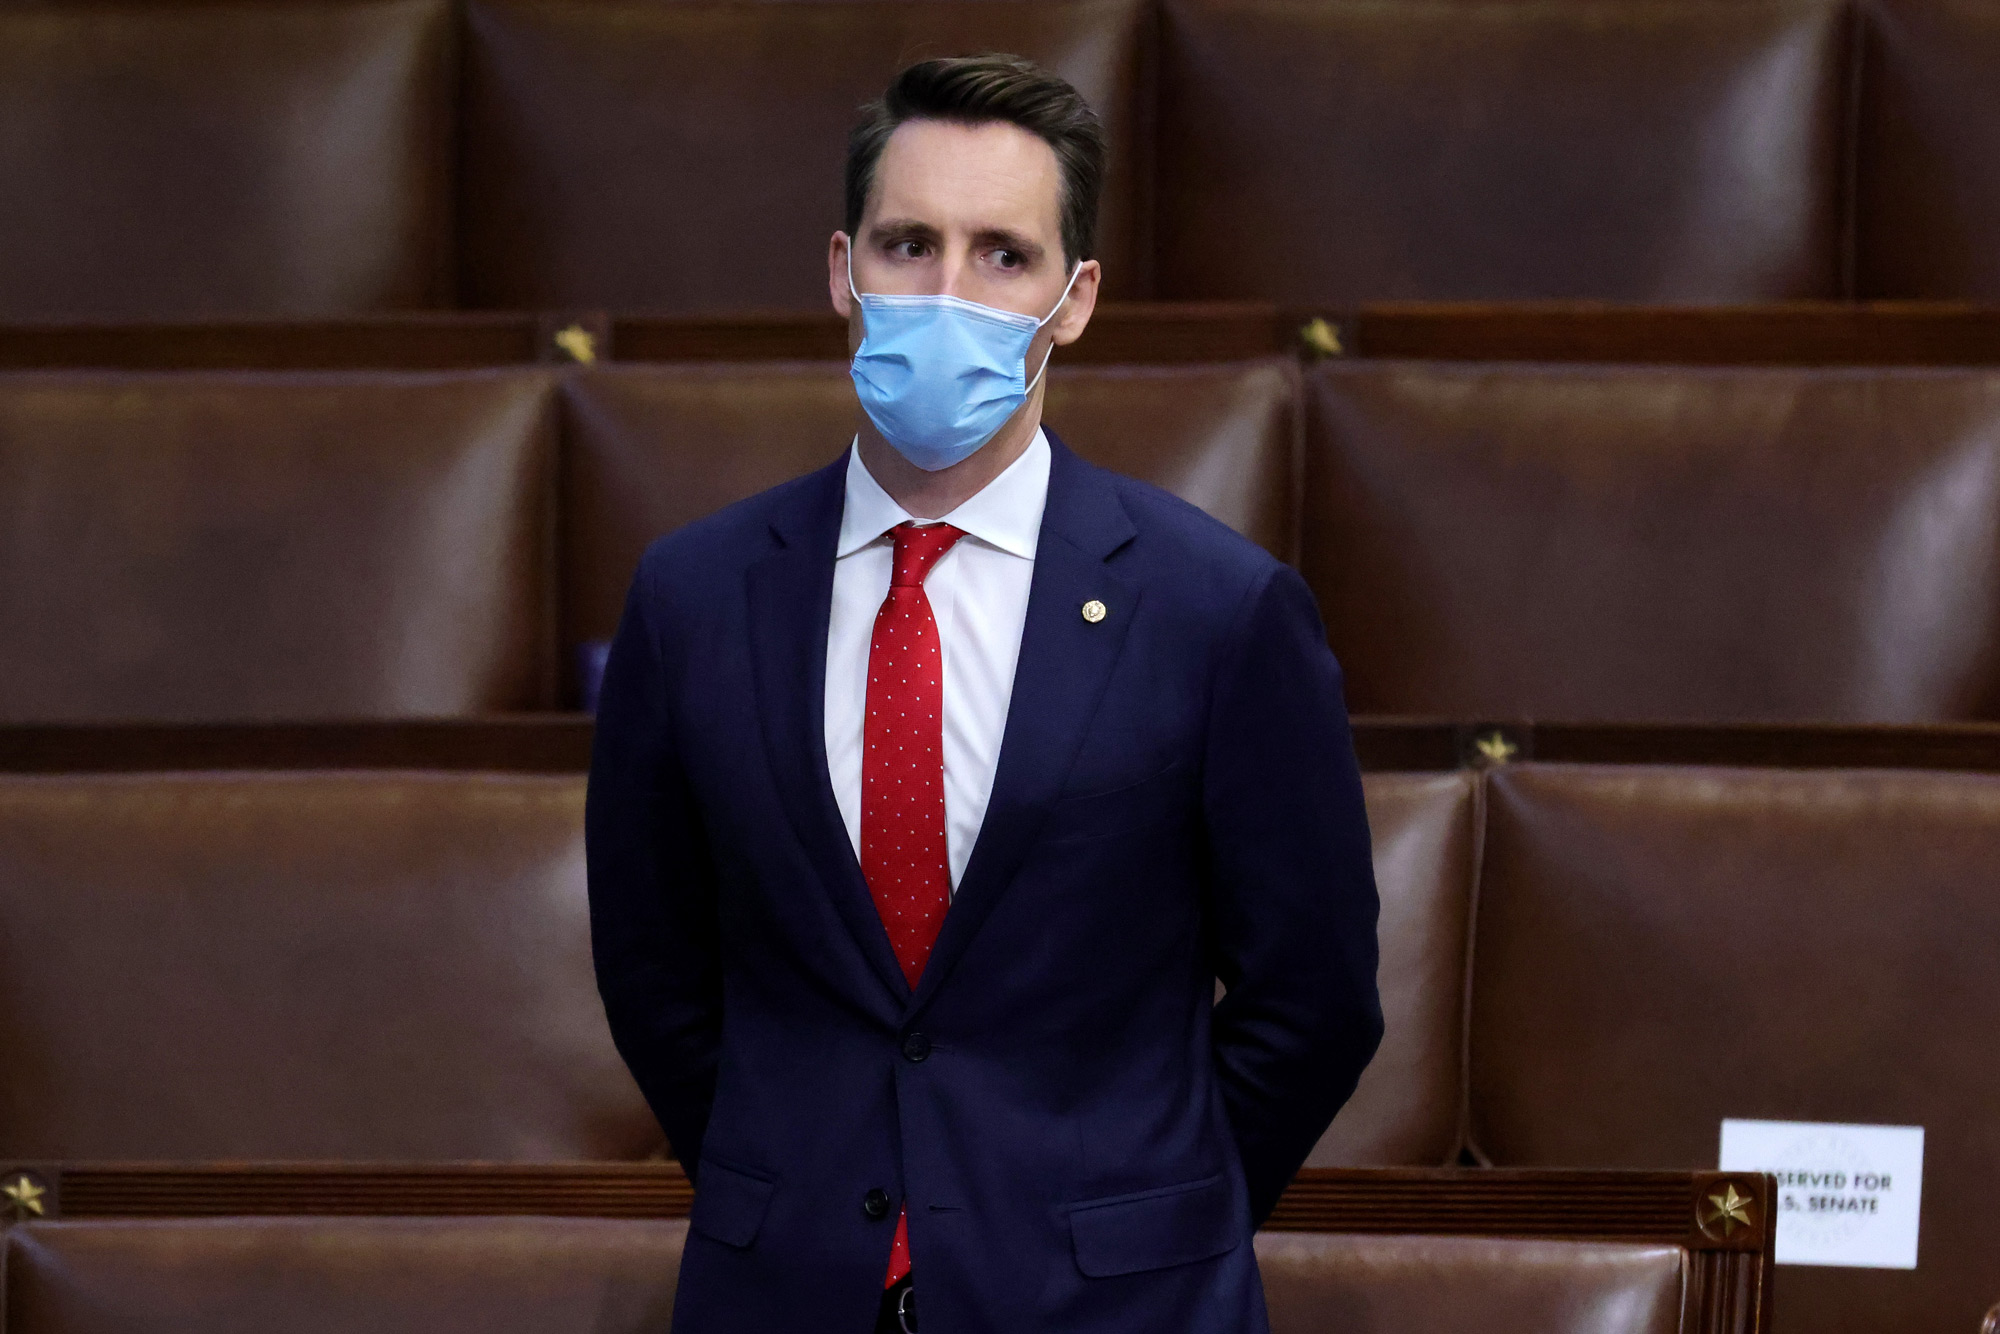 Sen. Josh Hawley stands in the House Chamber during a reconvening of a joint session of Congress on January 6 in Washington, DC.